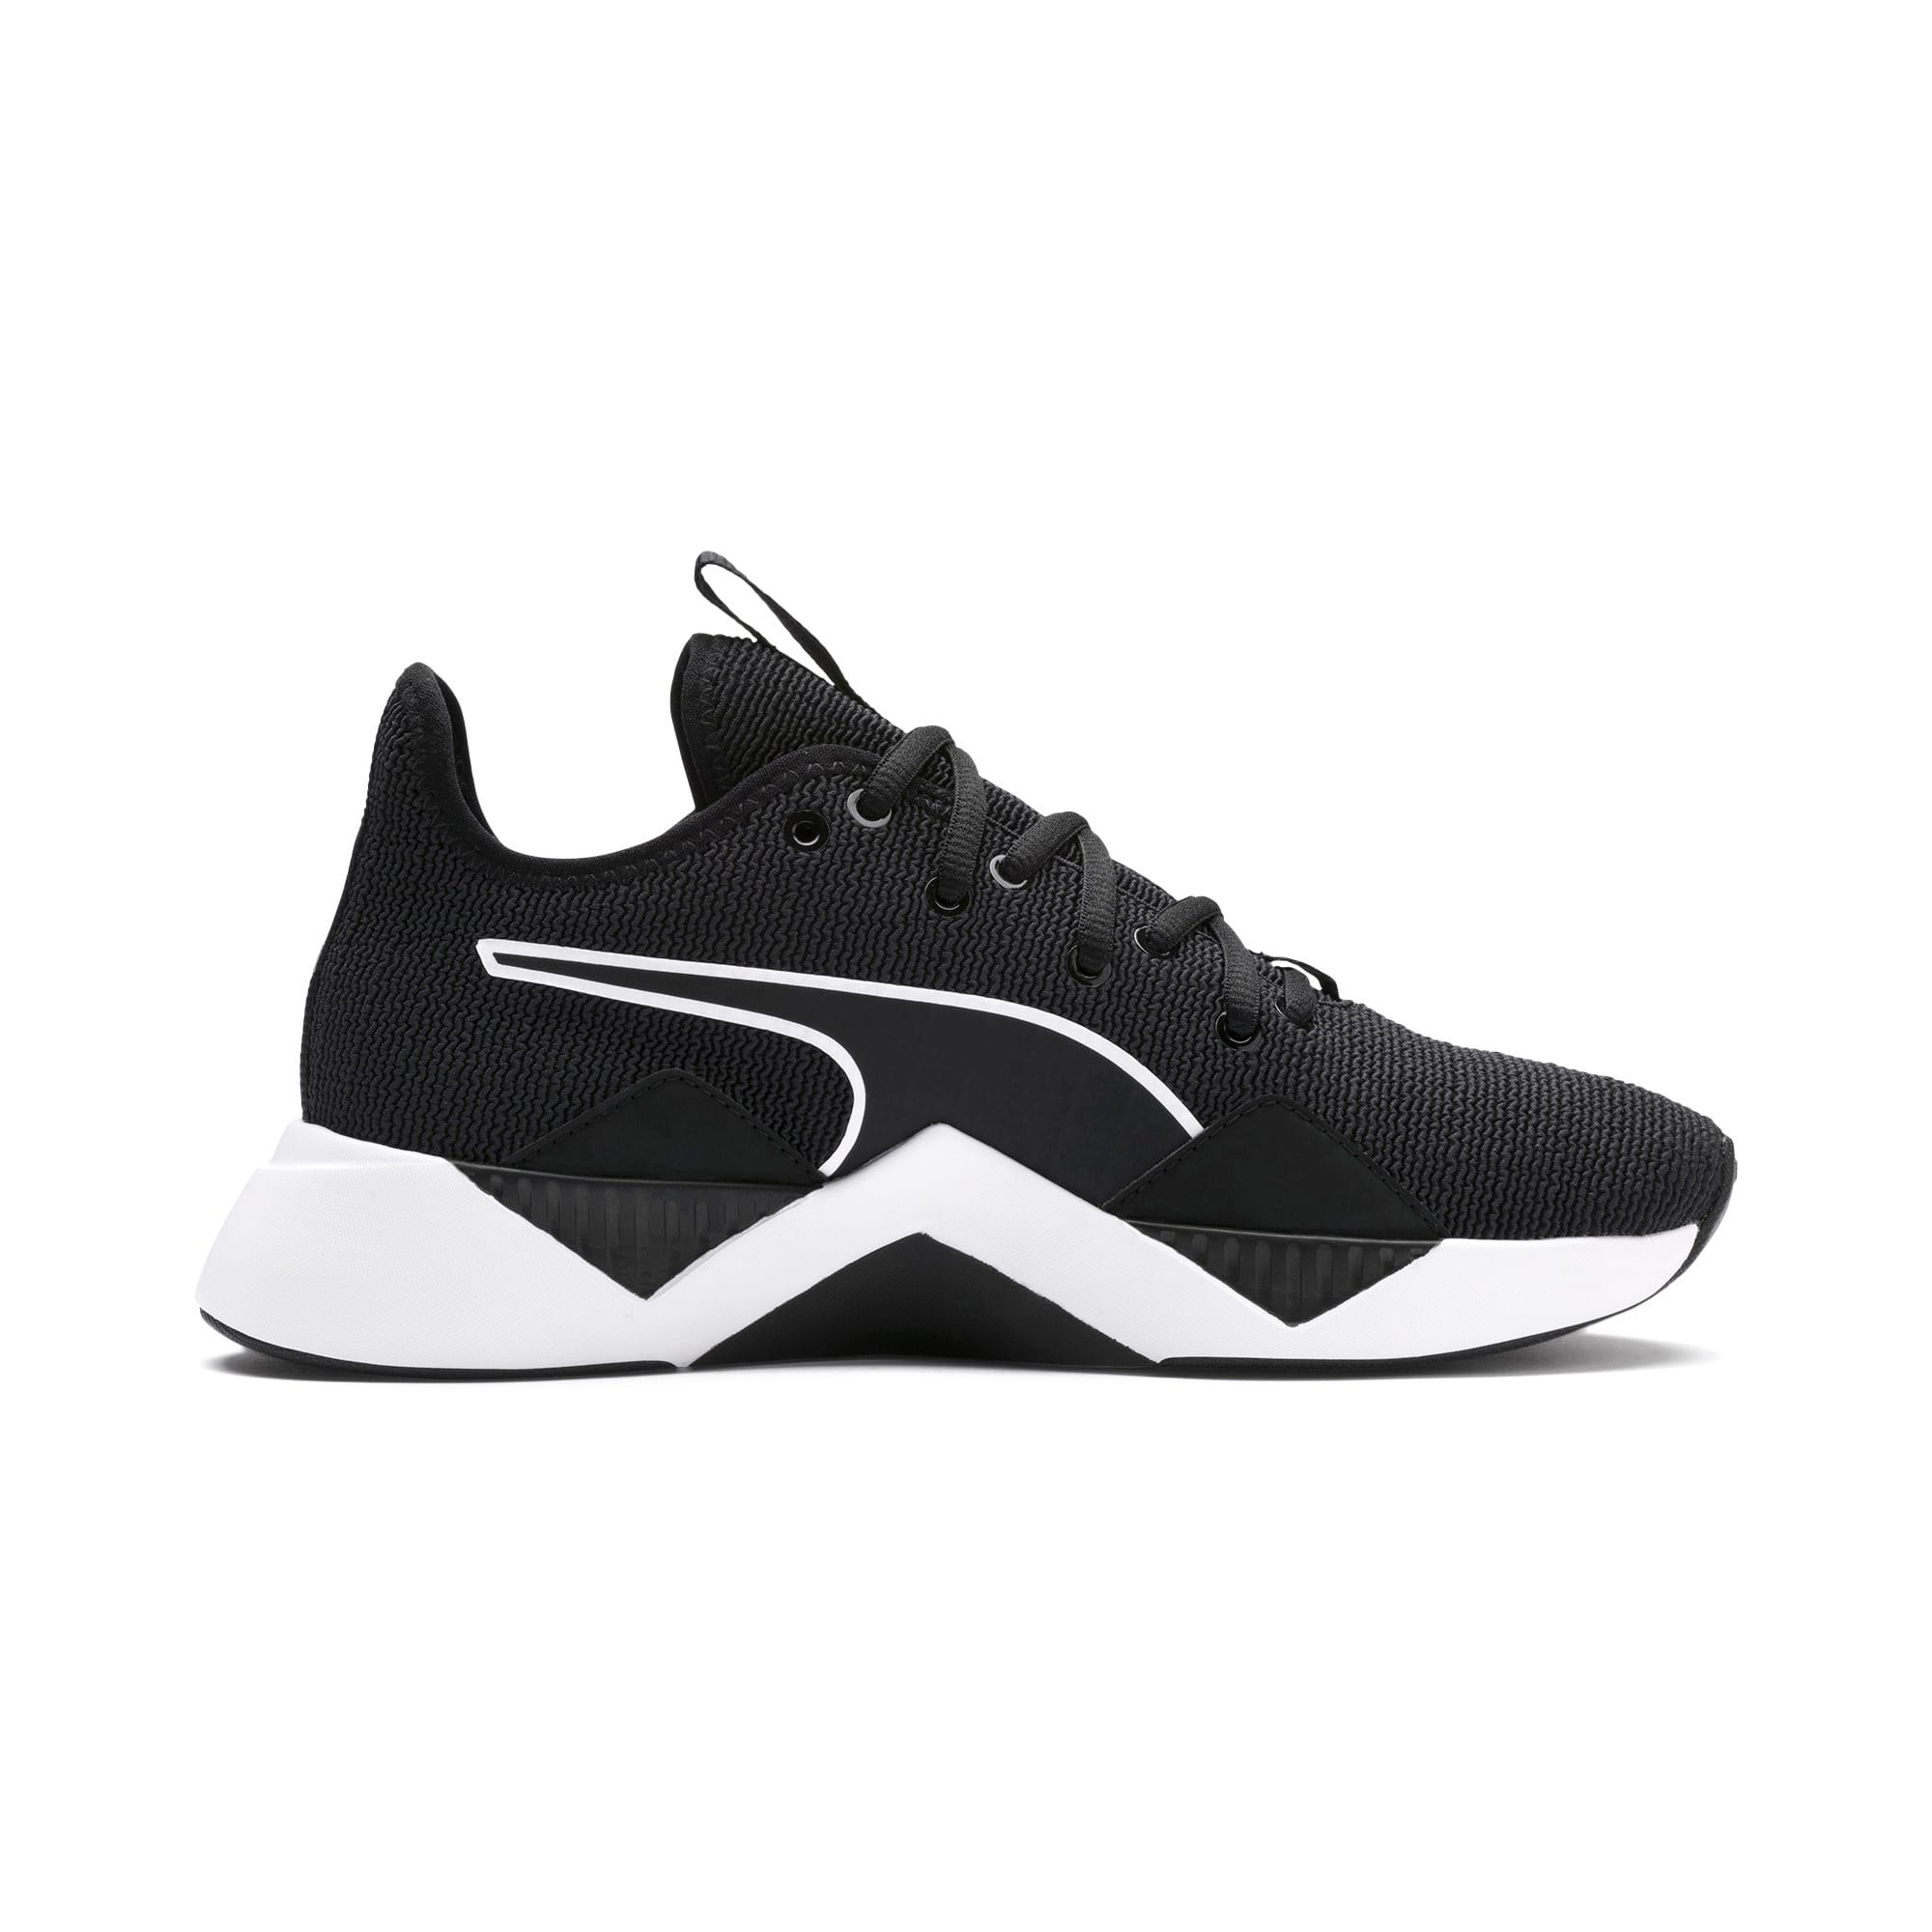 Thumbnail 6 of The Black Incite FS Wave Wn's, Puma Black-Puma White, medium-IND